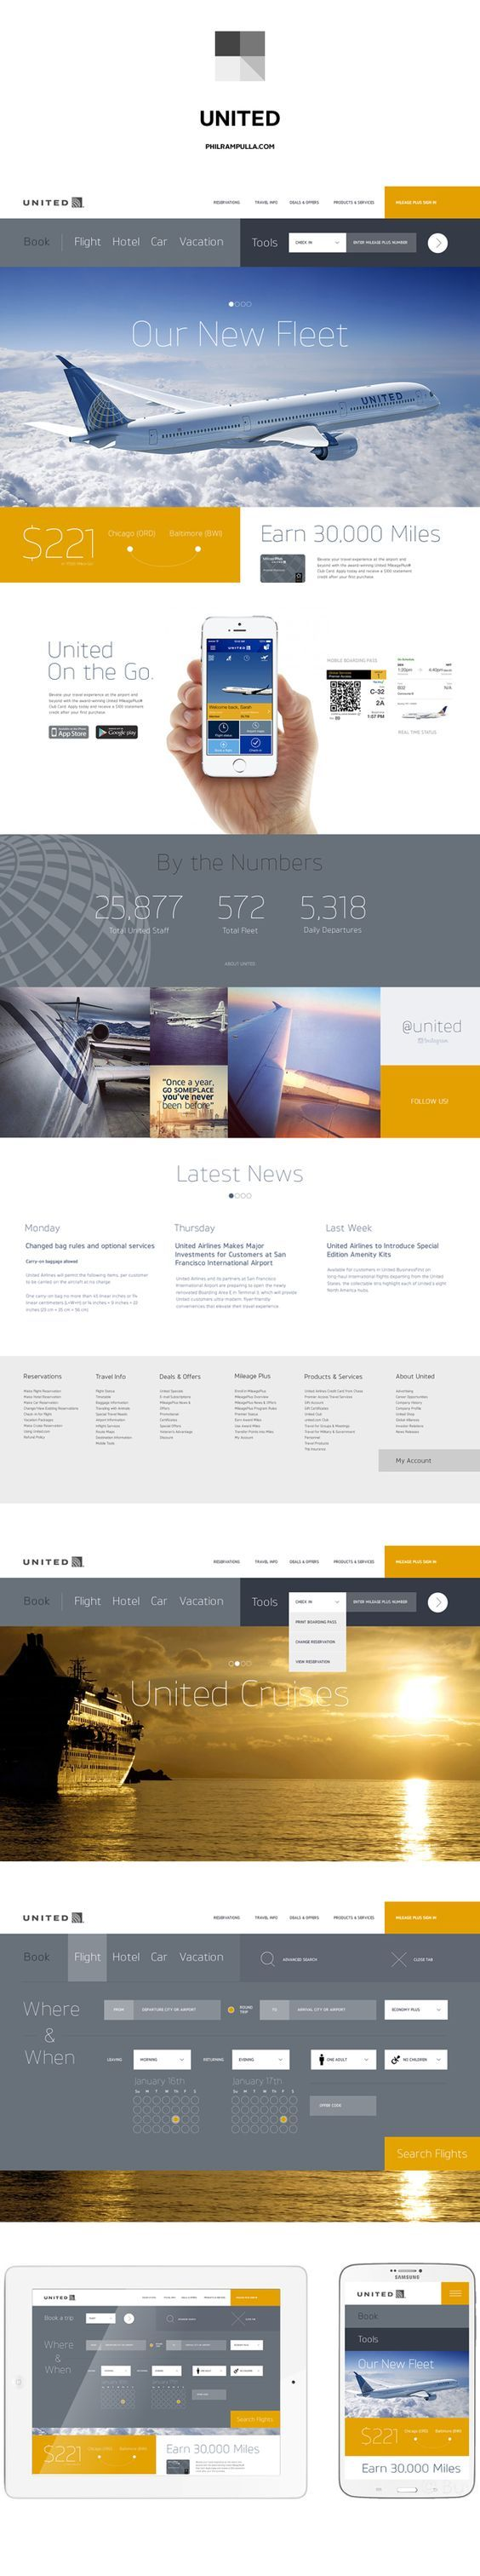 United Airlines Website Redesign by Phil Rampulla, via Behance: